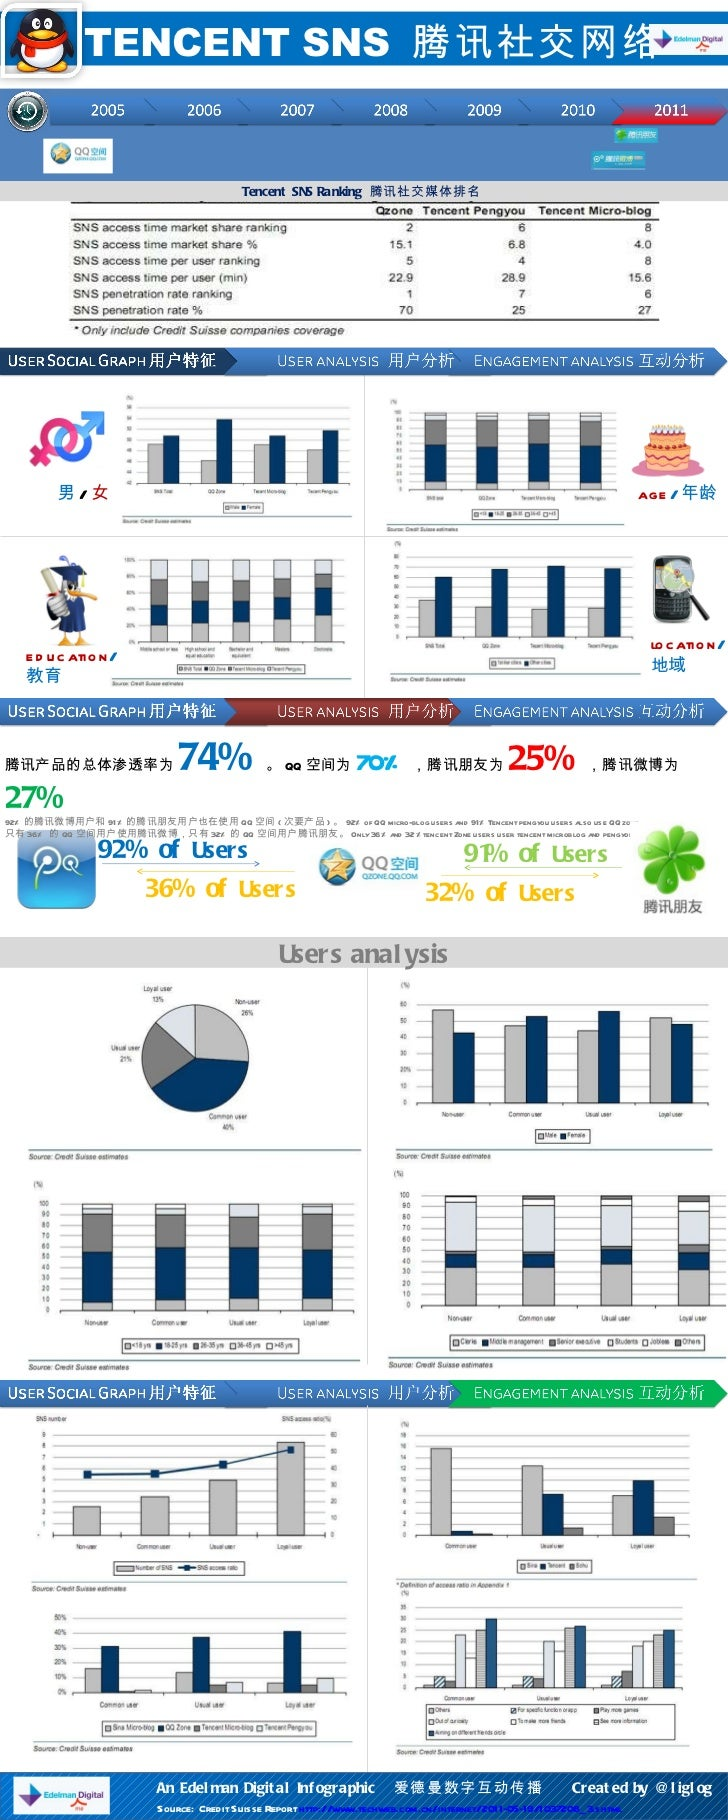 91% of  Users   92% of  Users   TENCENT SNS  腾讯社交网络 Tencent SNS Ranking  腾讯社交媒体排名  男 / 女 age / 年龄 education / 教育 location ...